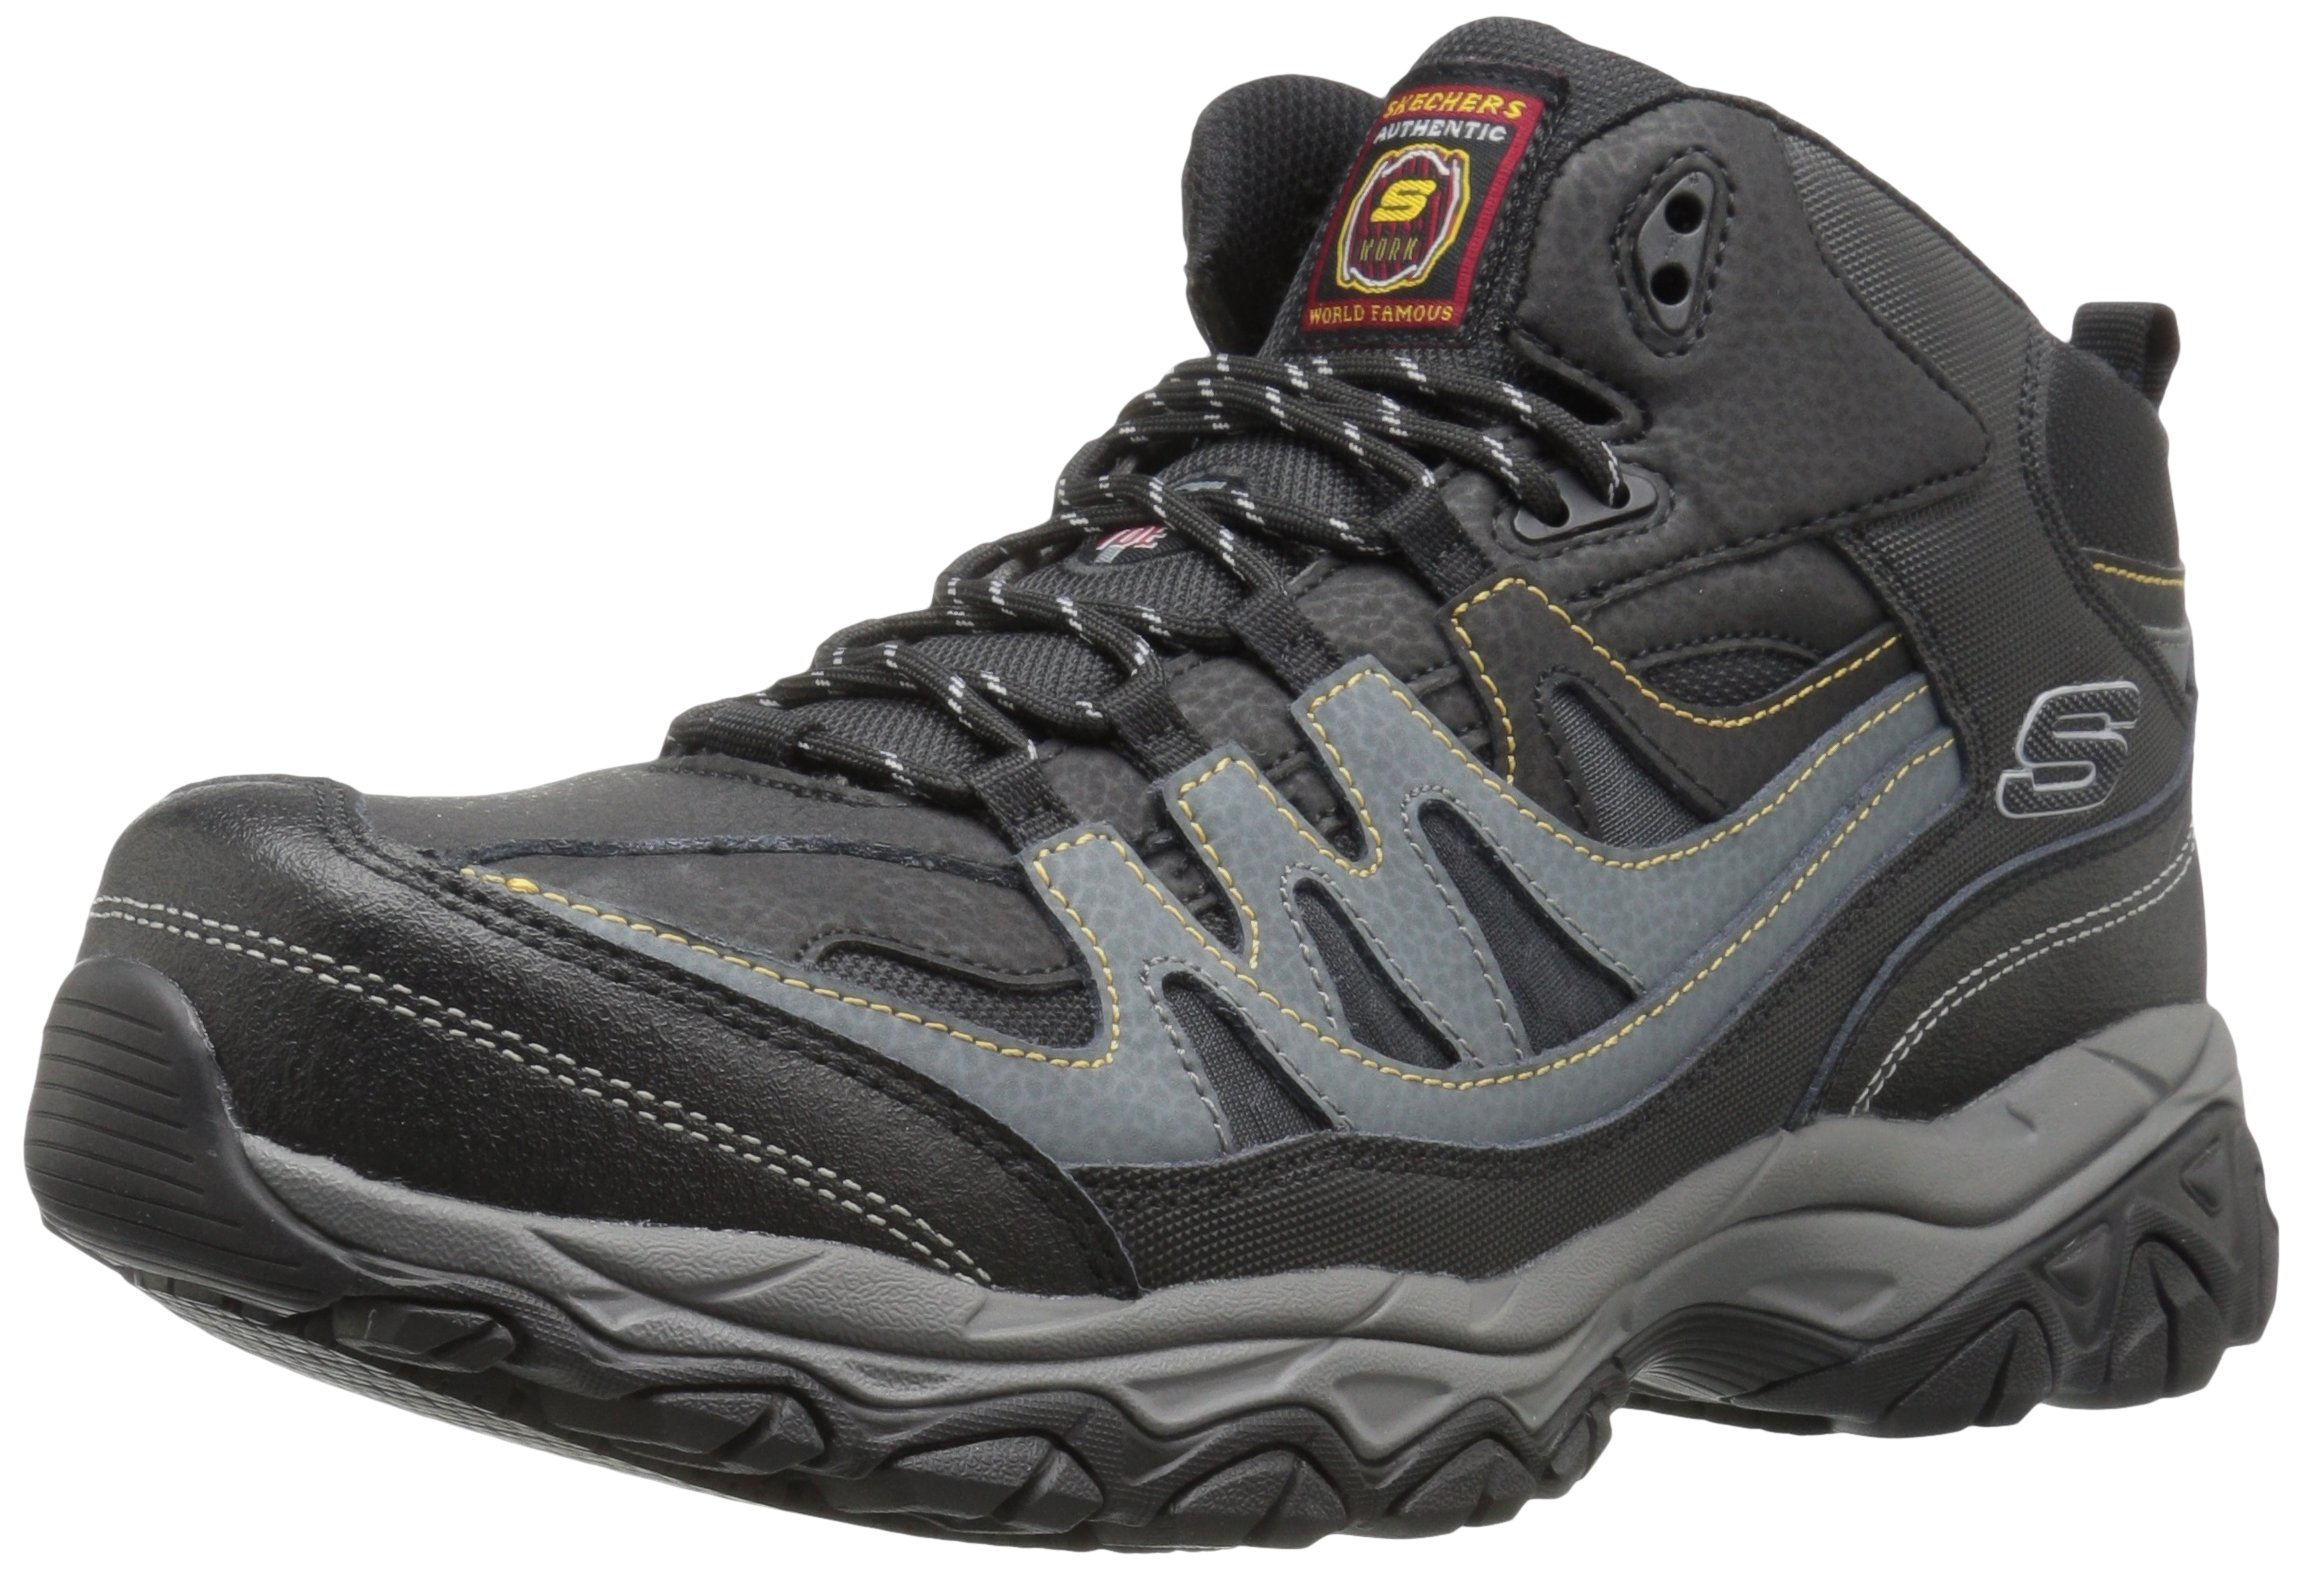 Skechers for Work Men's Holdredge Rebem Work Boot,Black/Charcoal,7.5 M US